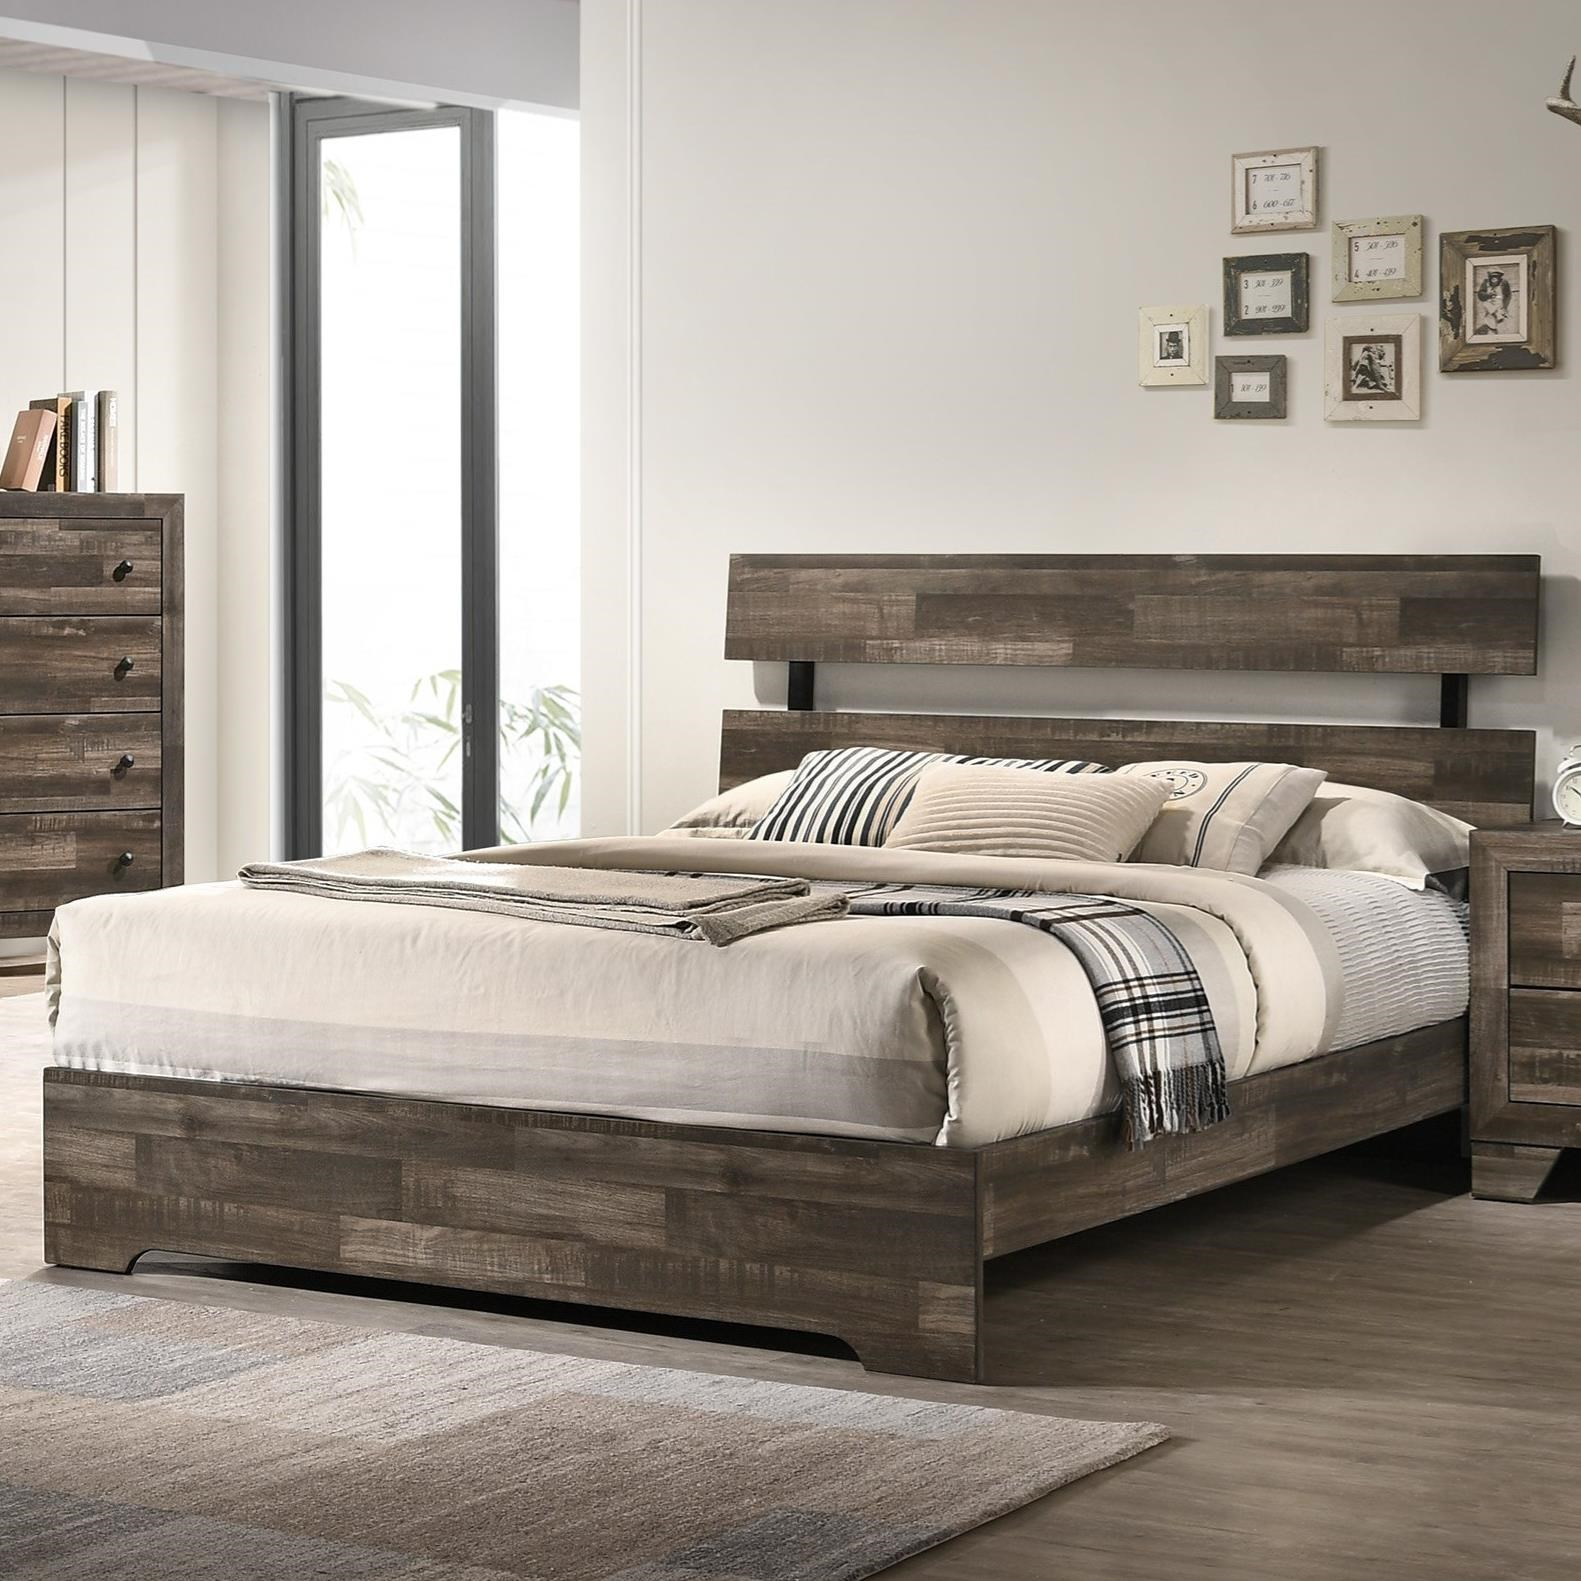 Atticus Twin Bed by Crown Mark at Darvin Furniture